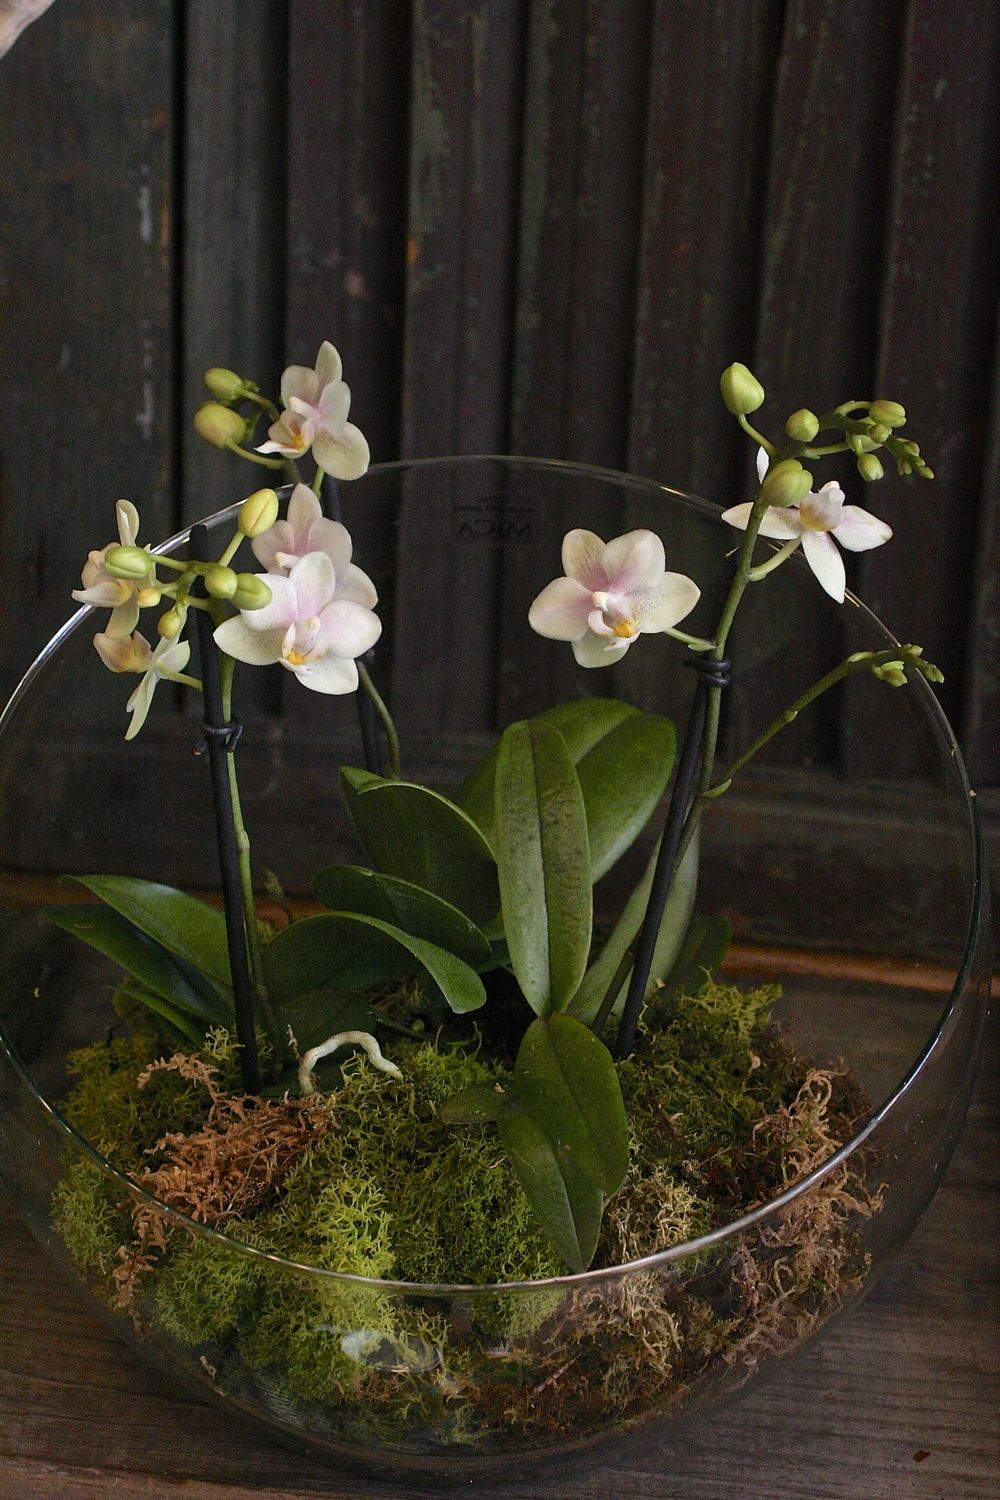 Mgg ideas pinterest orchid terraria and plants